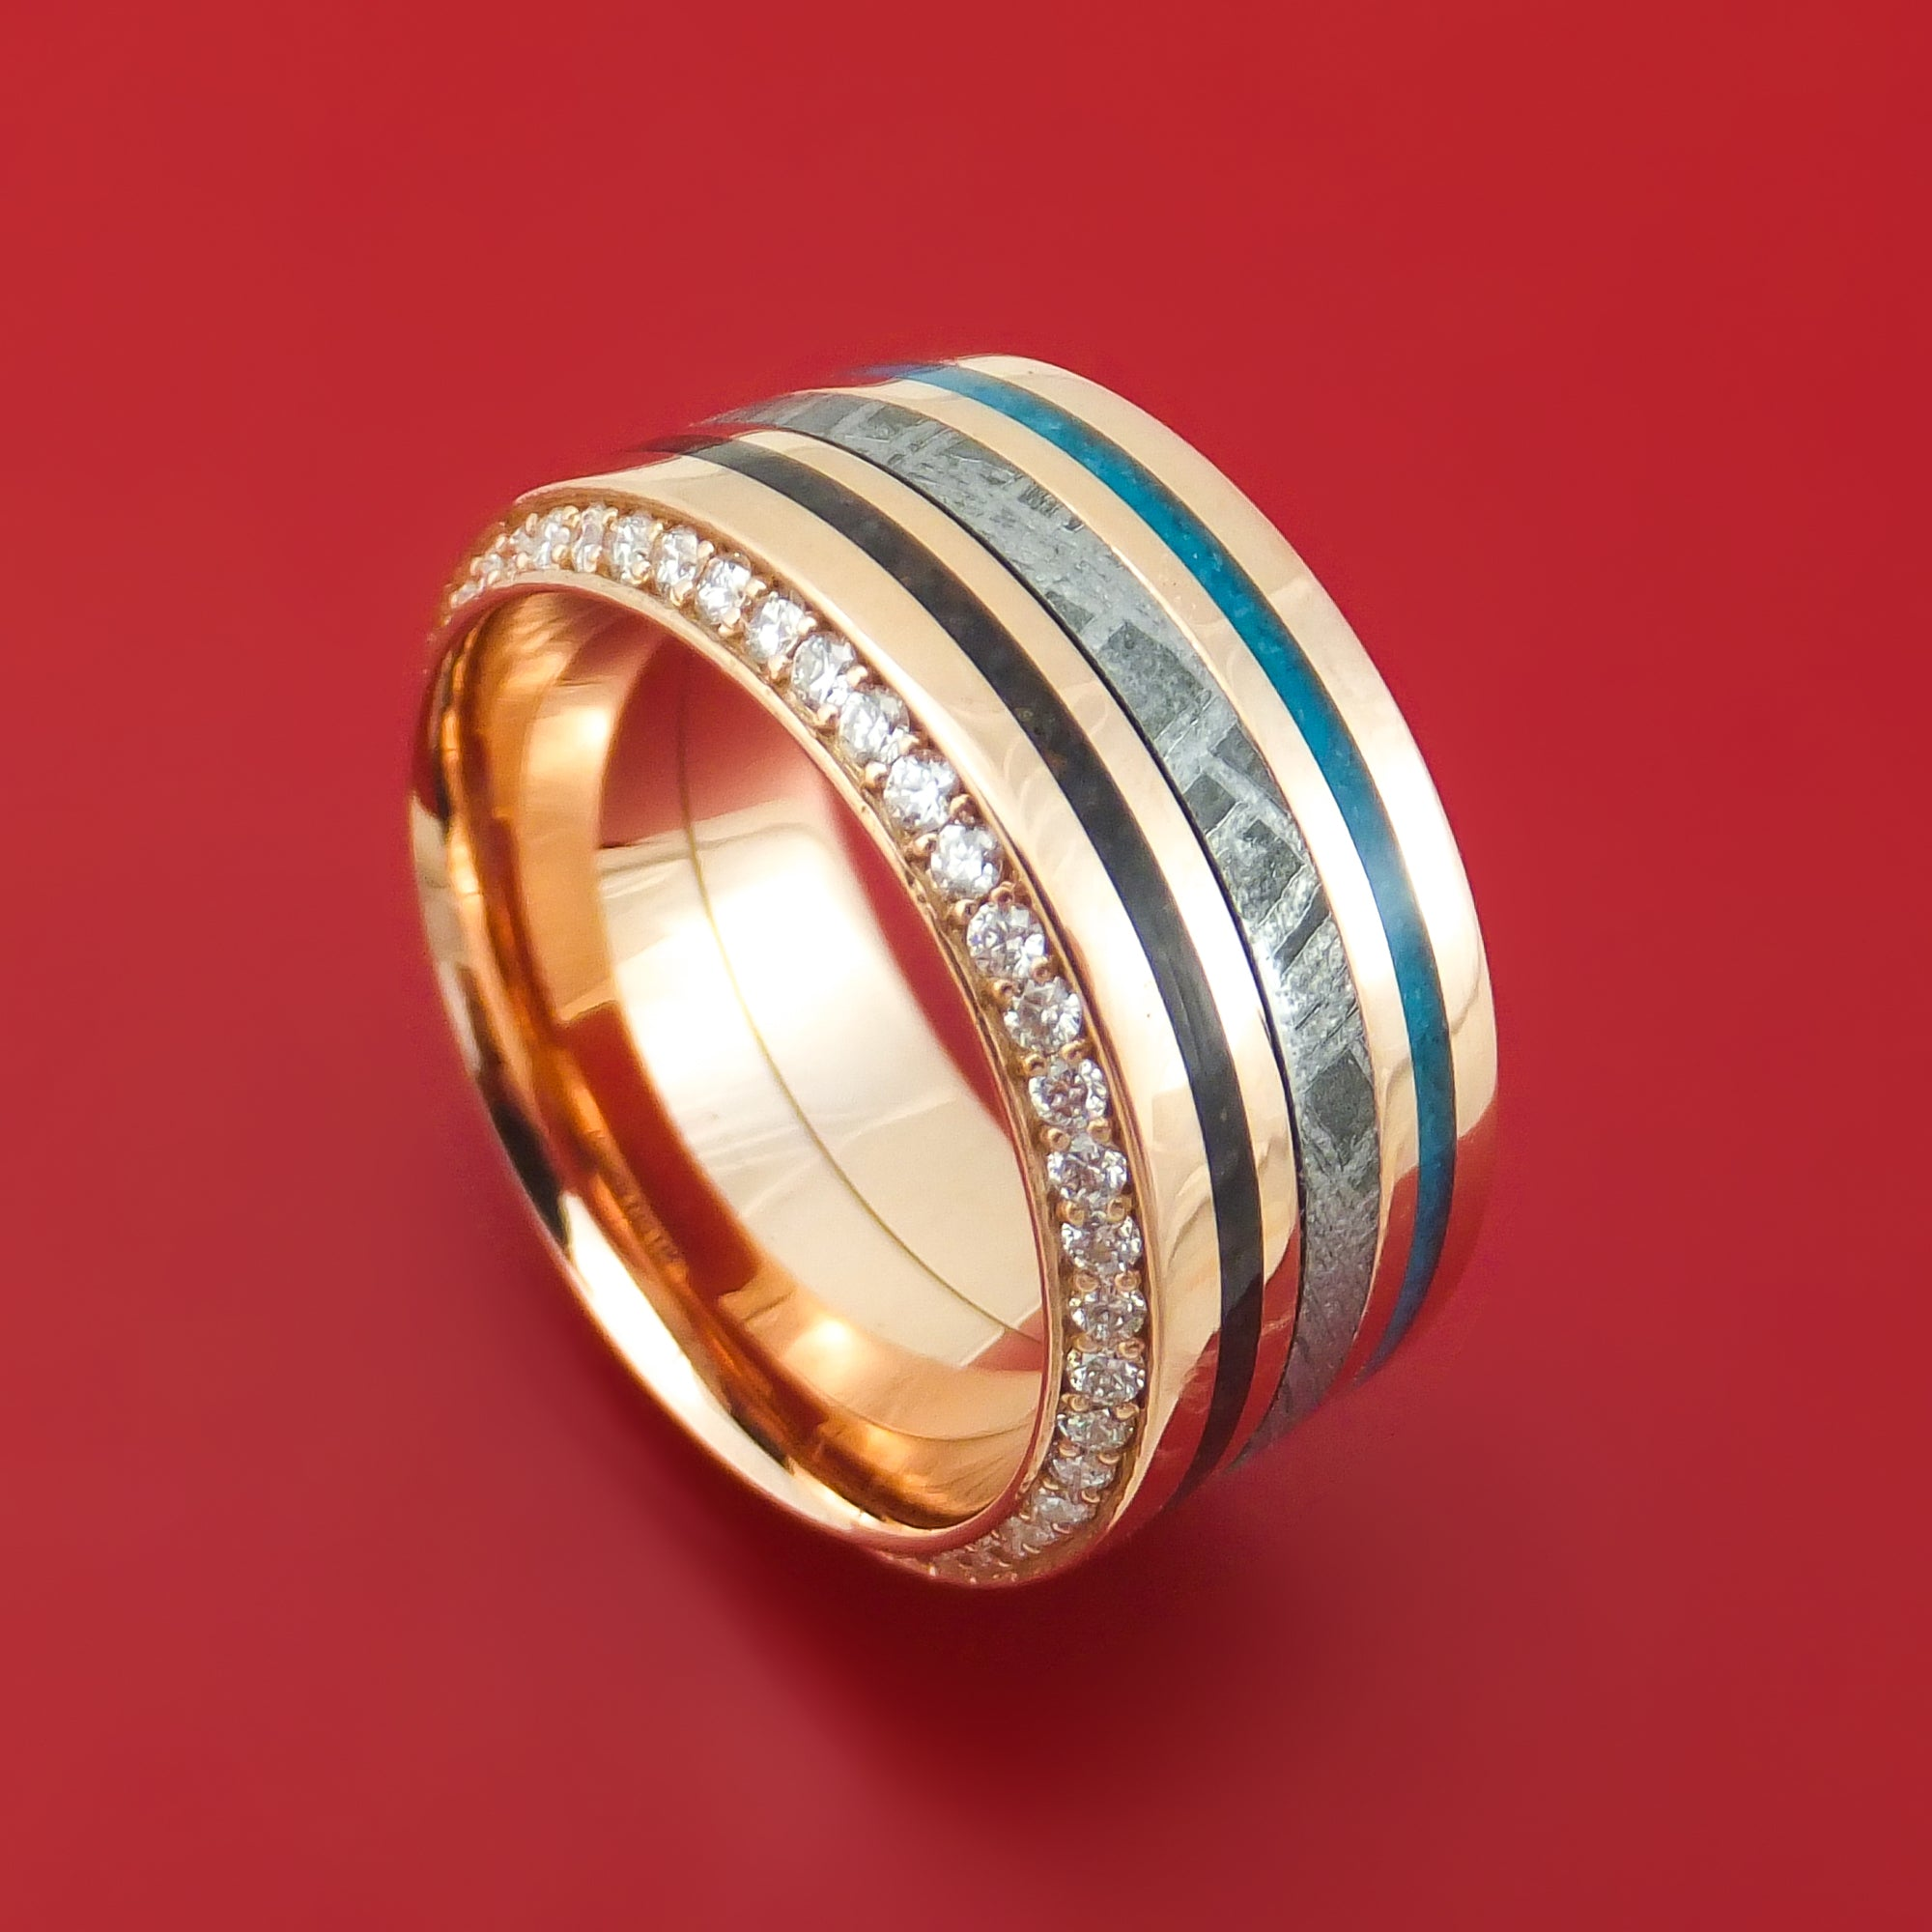 494d02f18a7e5 14K Rose Gold Eternity Diamond Ring with Meteorite, Dinosaur Bone and